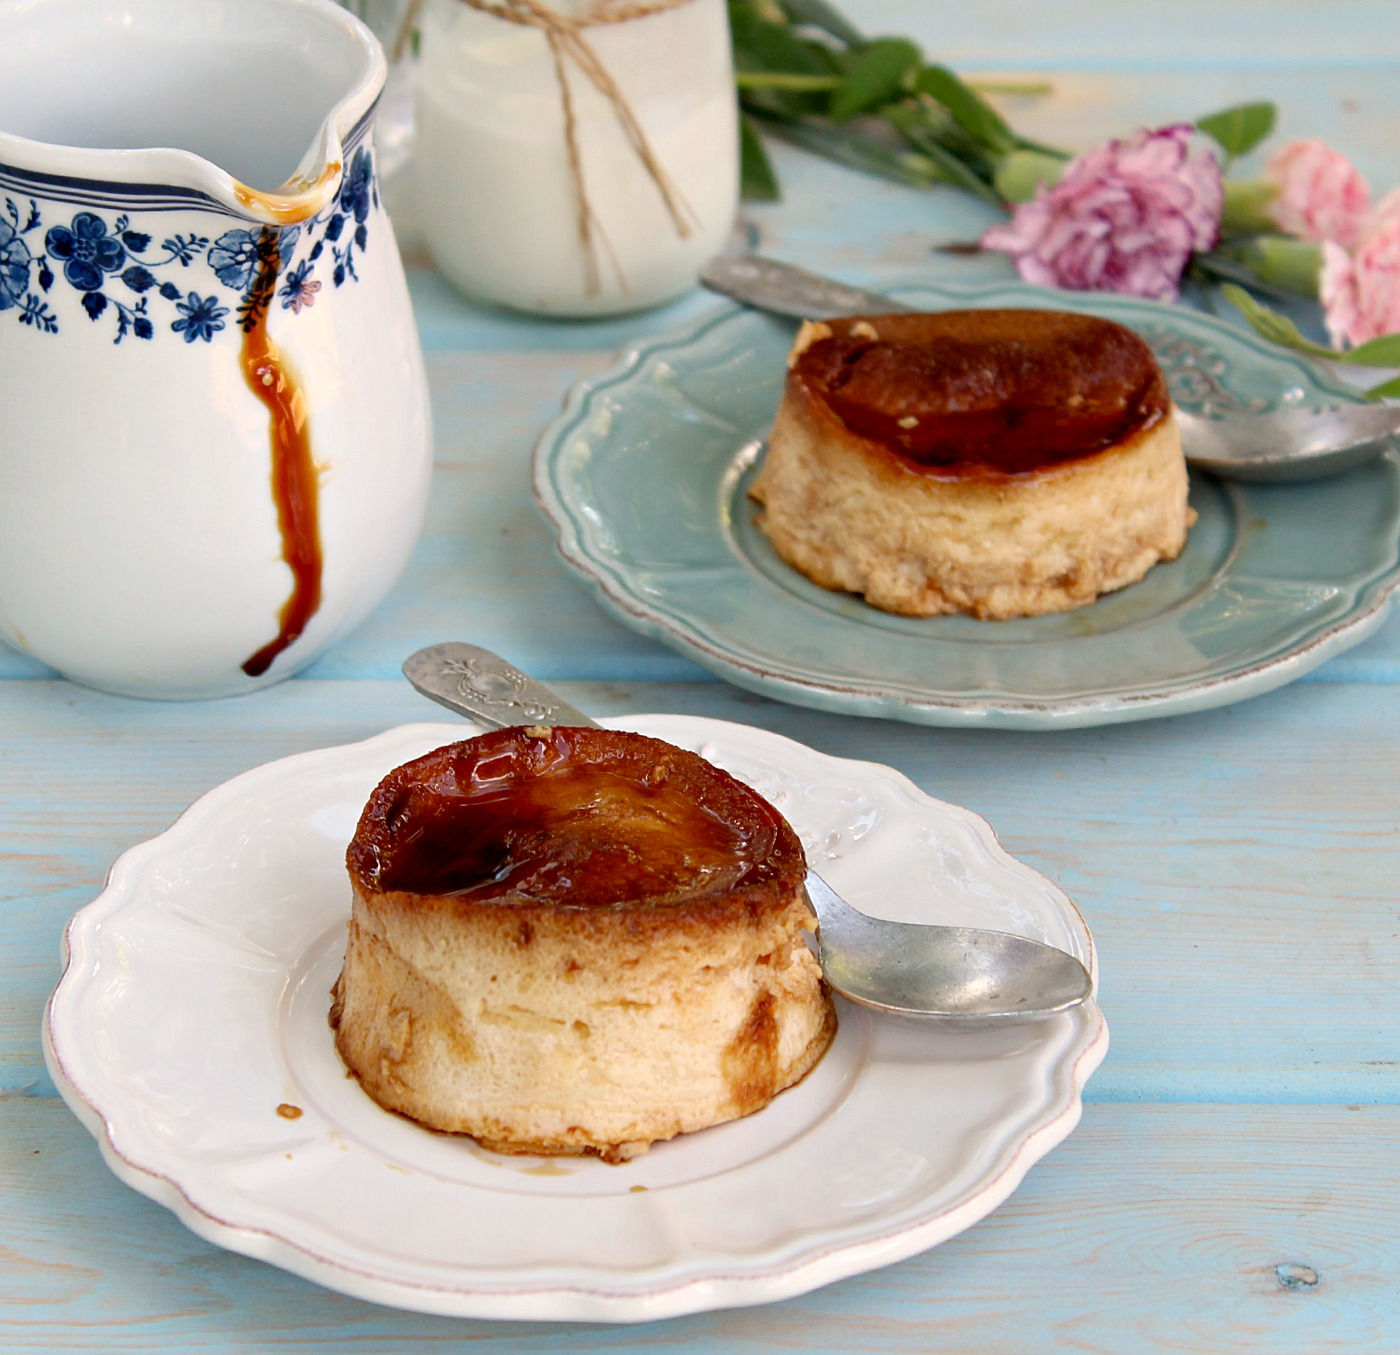 Butterscotch Cheesecake Flan - an easy, healthy and delicious dessert!